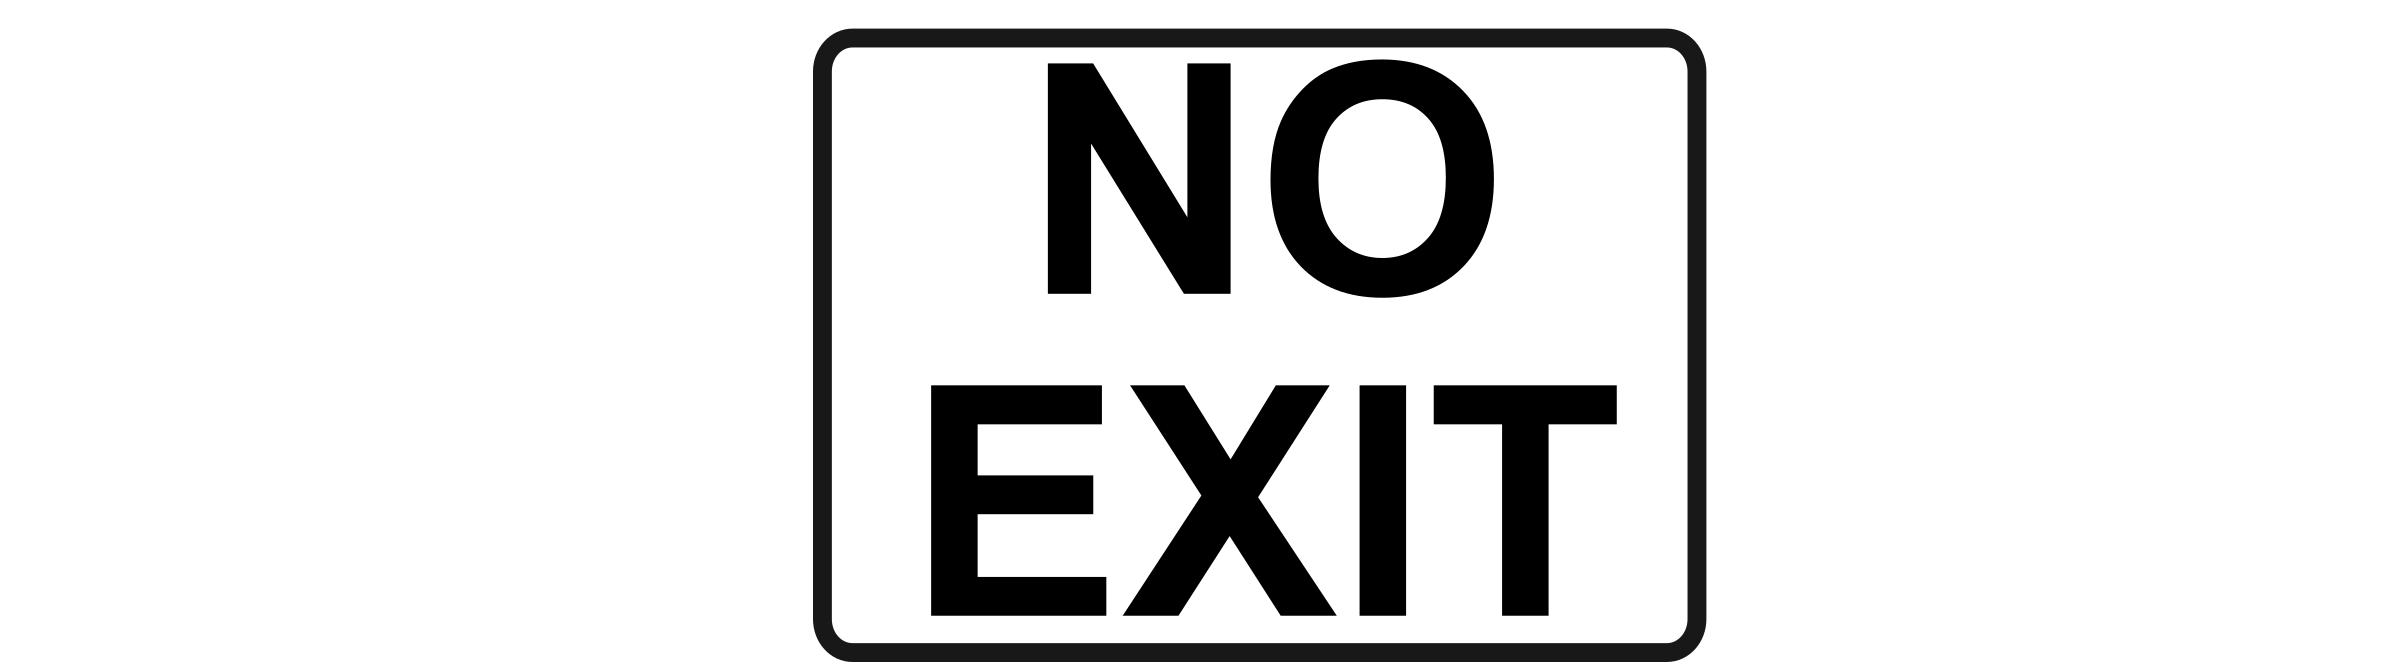 No Exit - Black on White by Rfc1394